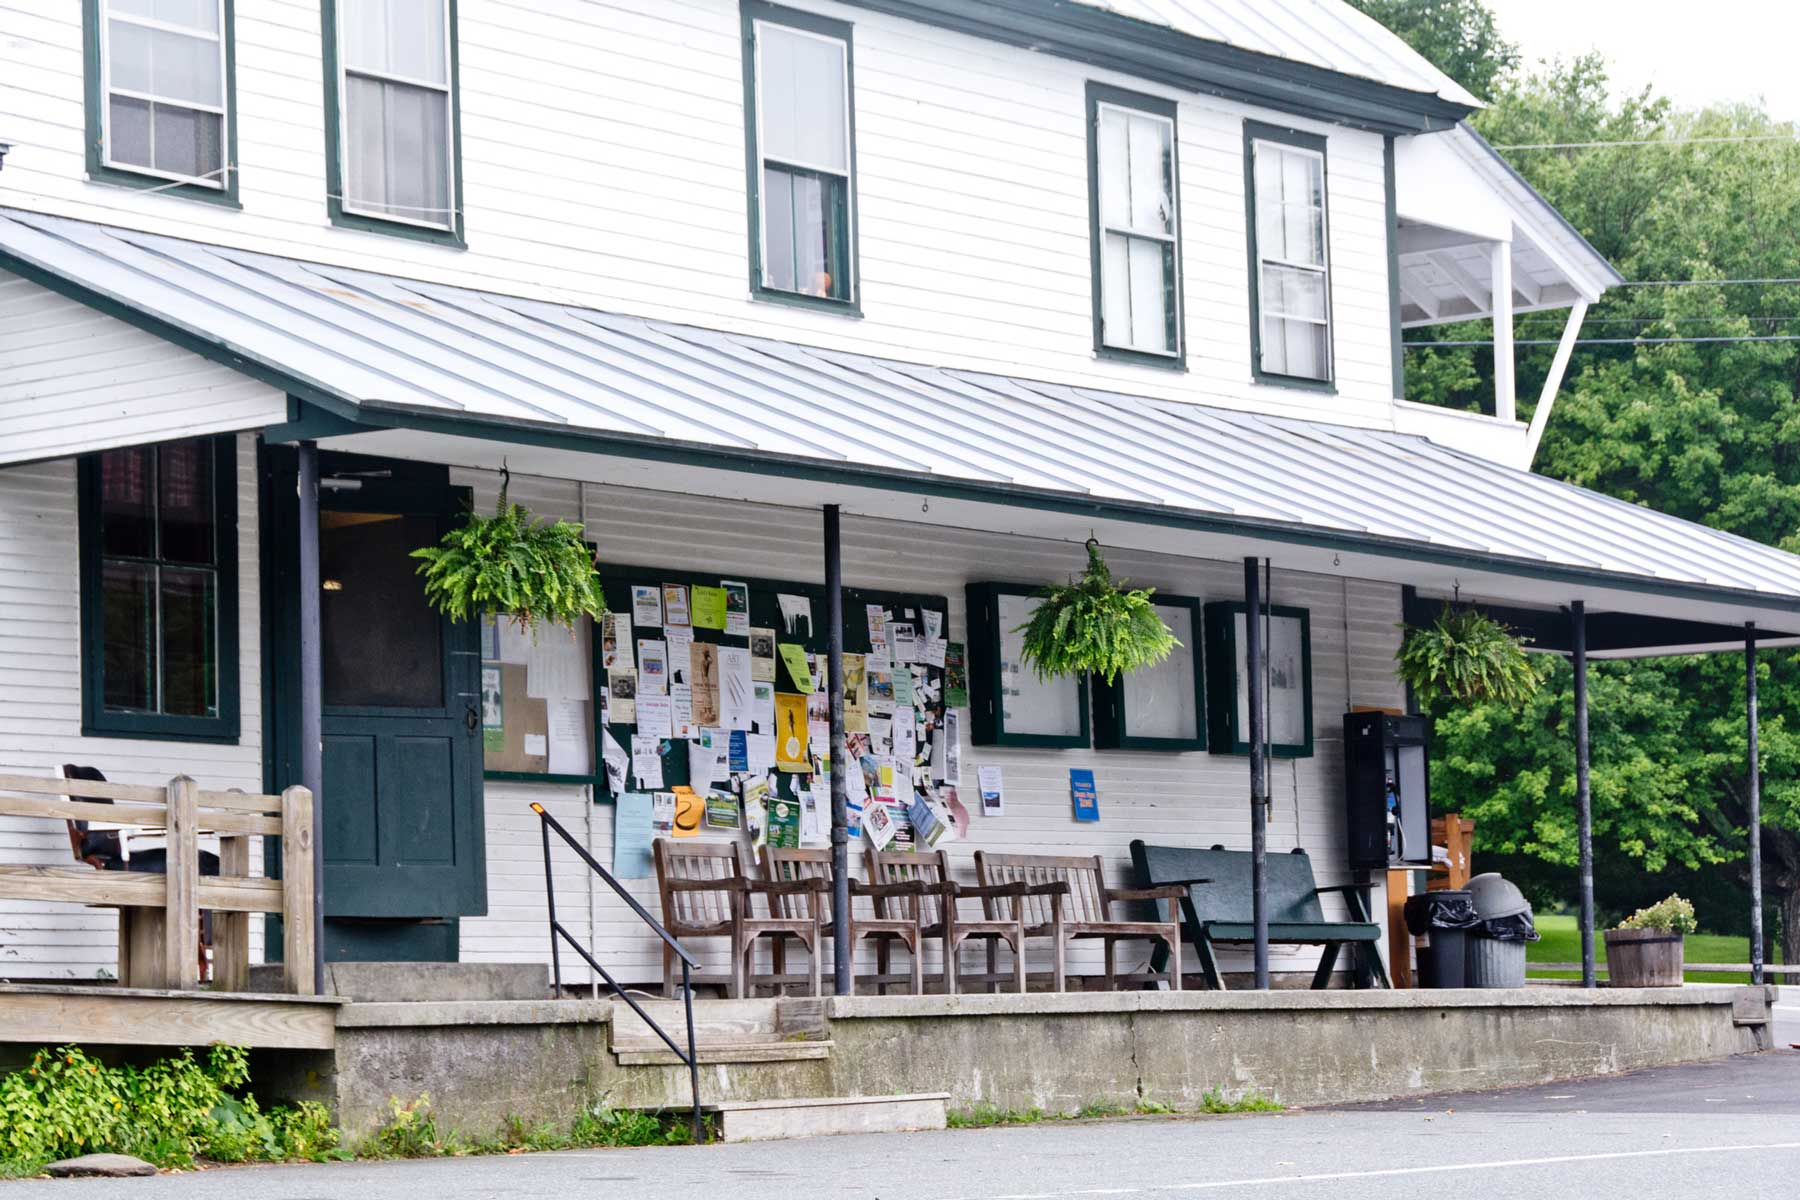 Benches in front of the town bulletin board invite visitors to stay a while and chat on the porch of the Barnard General Store on a summer evening.